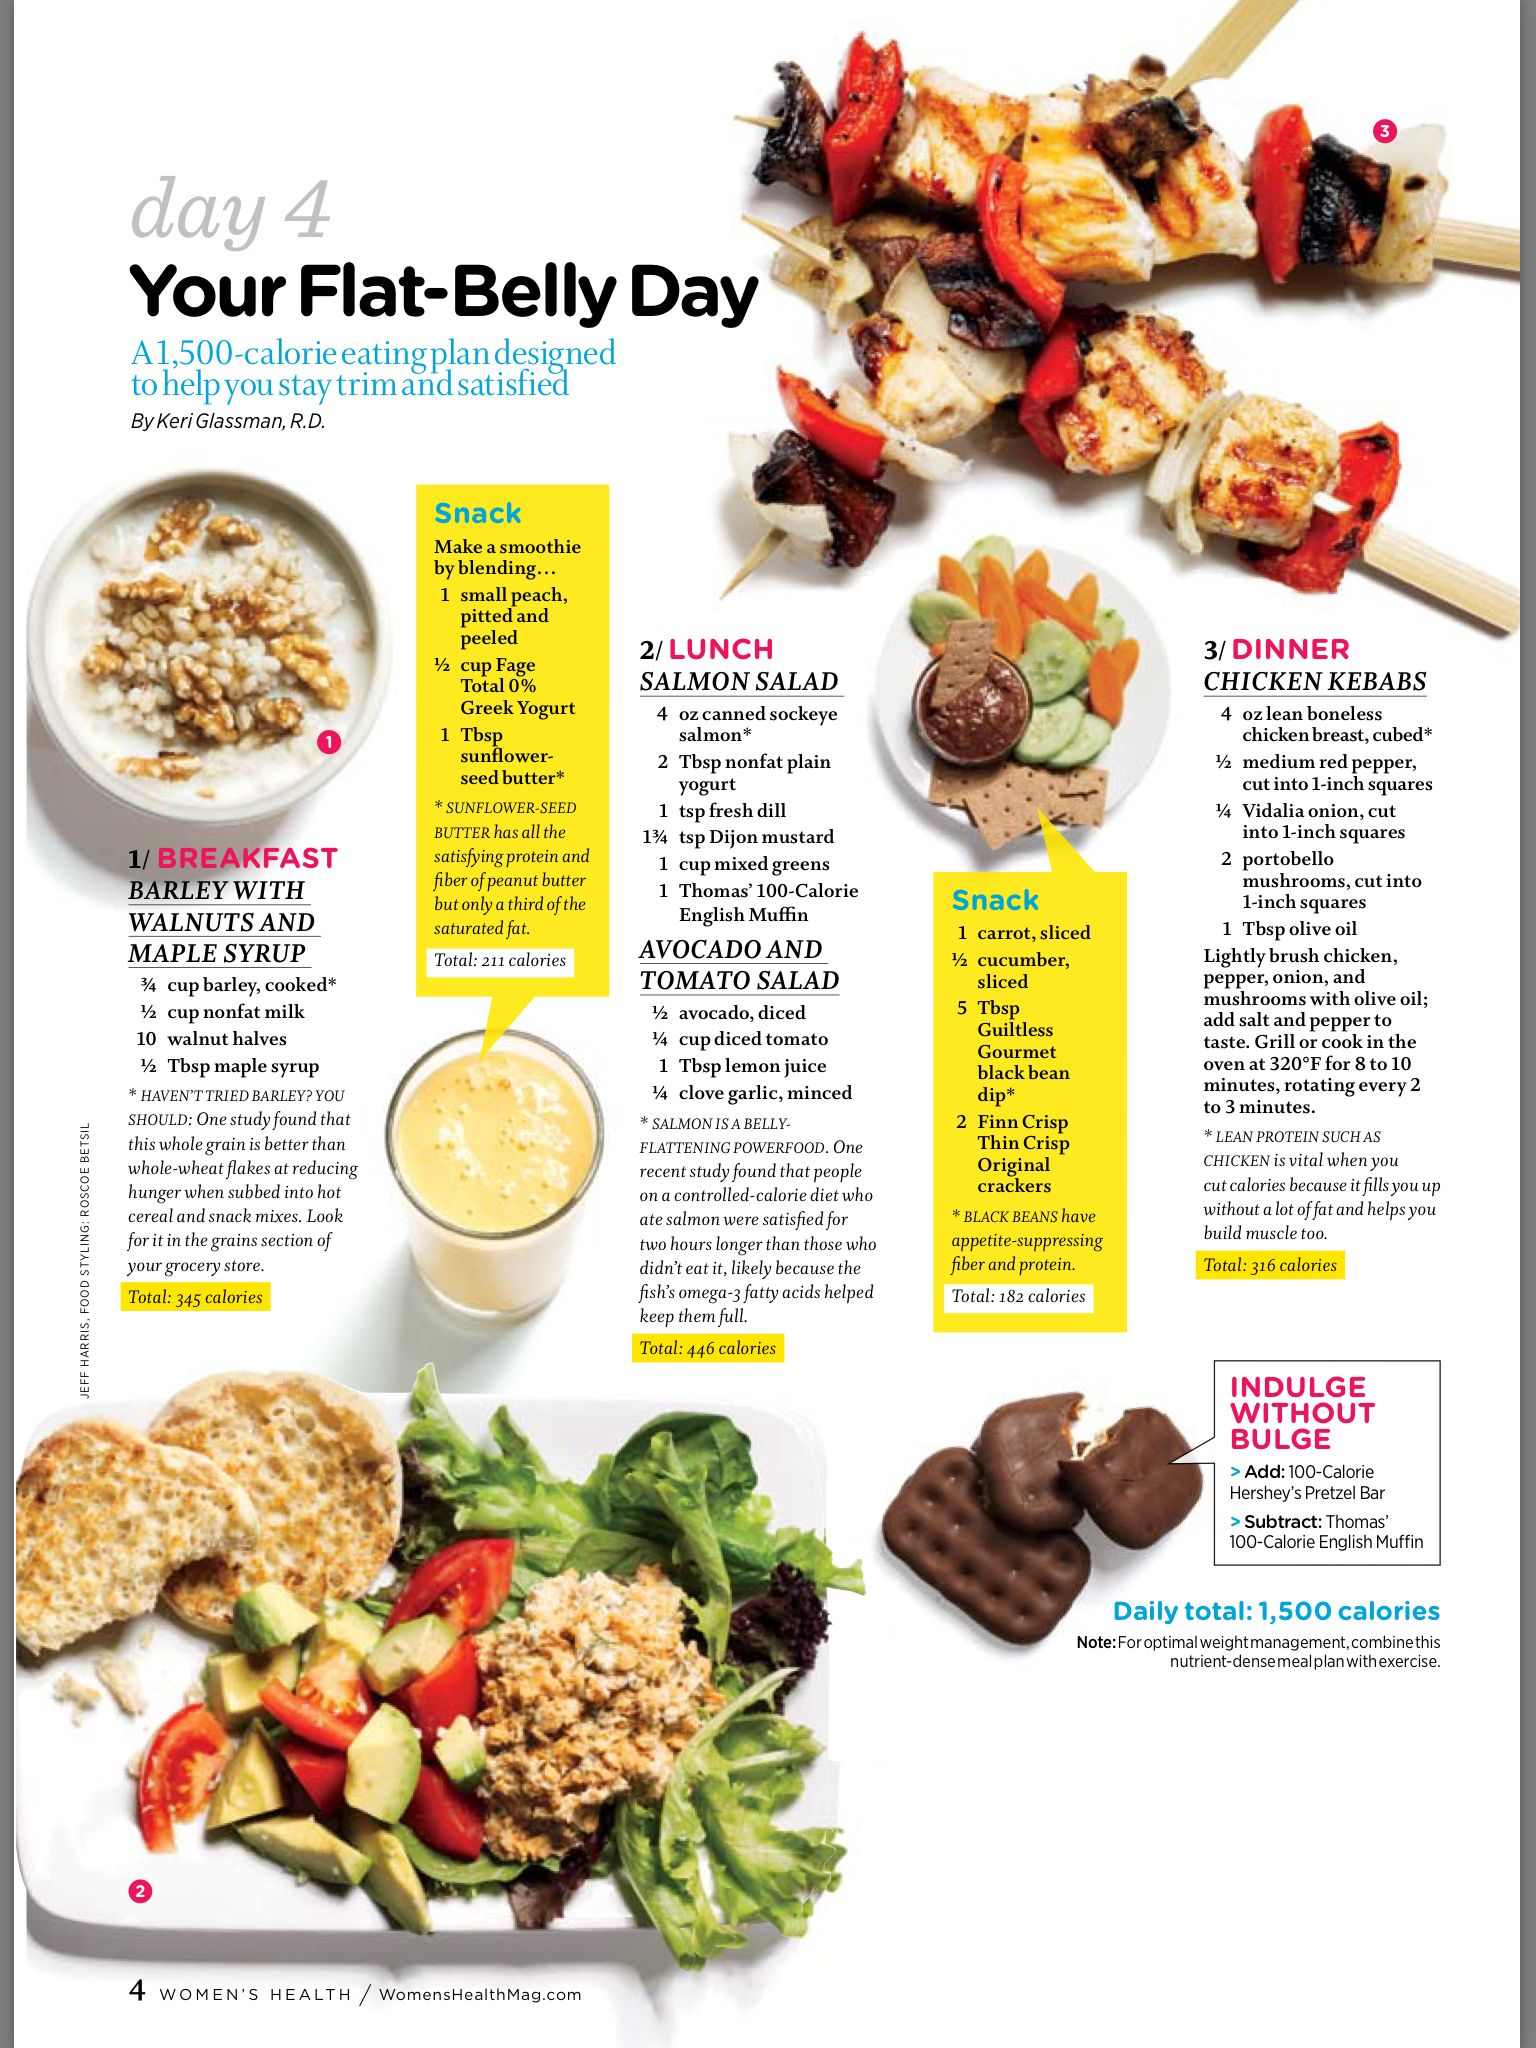 4 Day Diet Plans: Flat Belly Foods, 1500 Calorie Meal